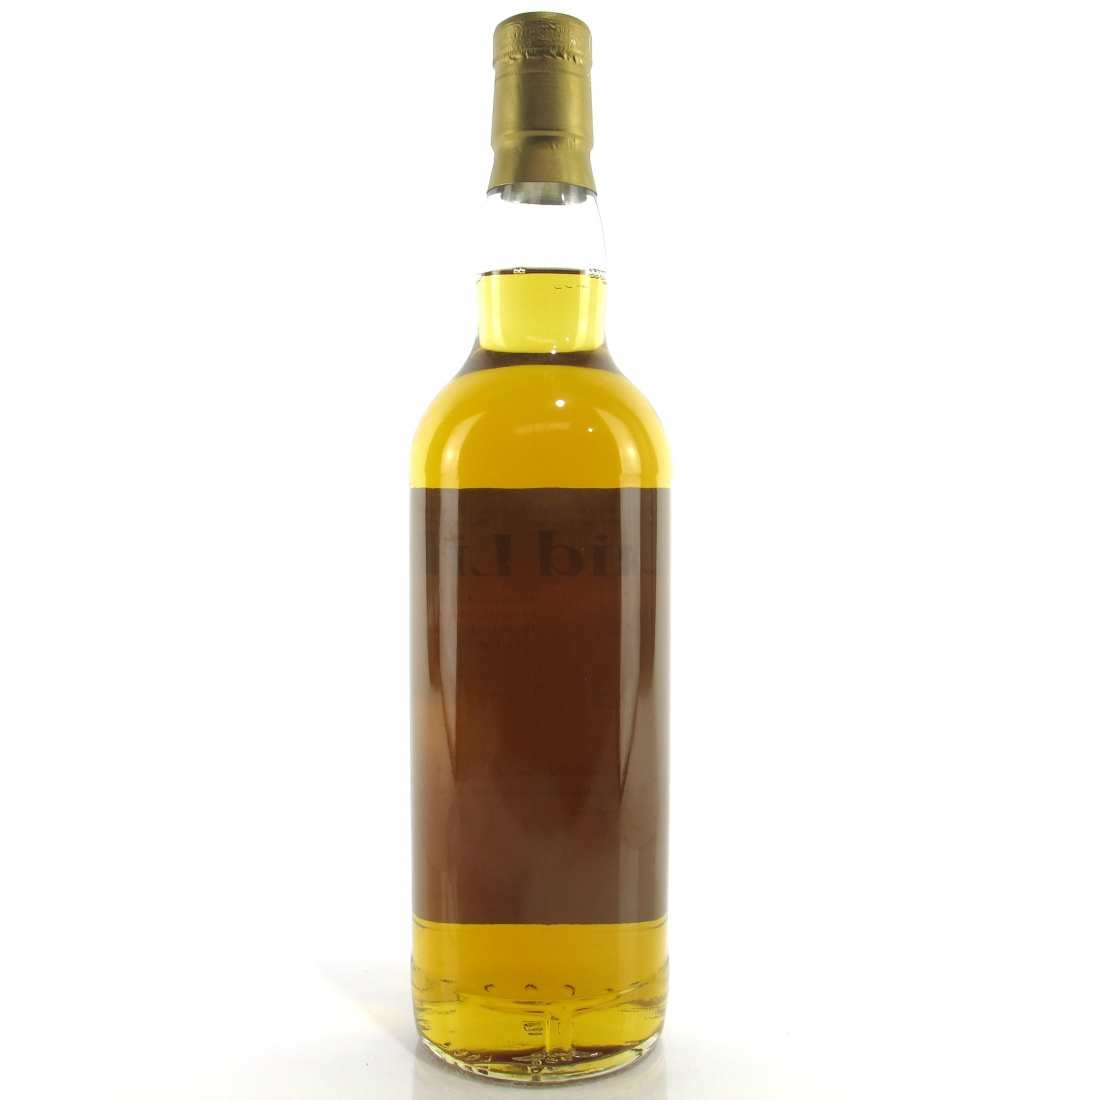 Benriach 1996 Whisky Agency 16 Year Old / Liquid Library